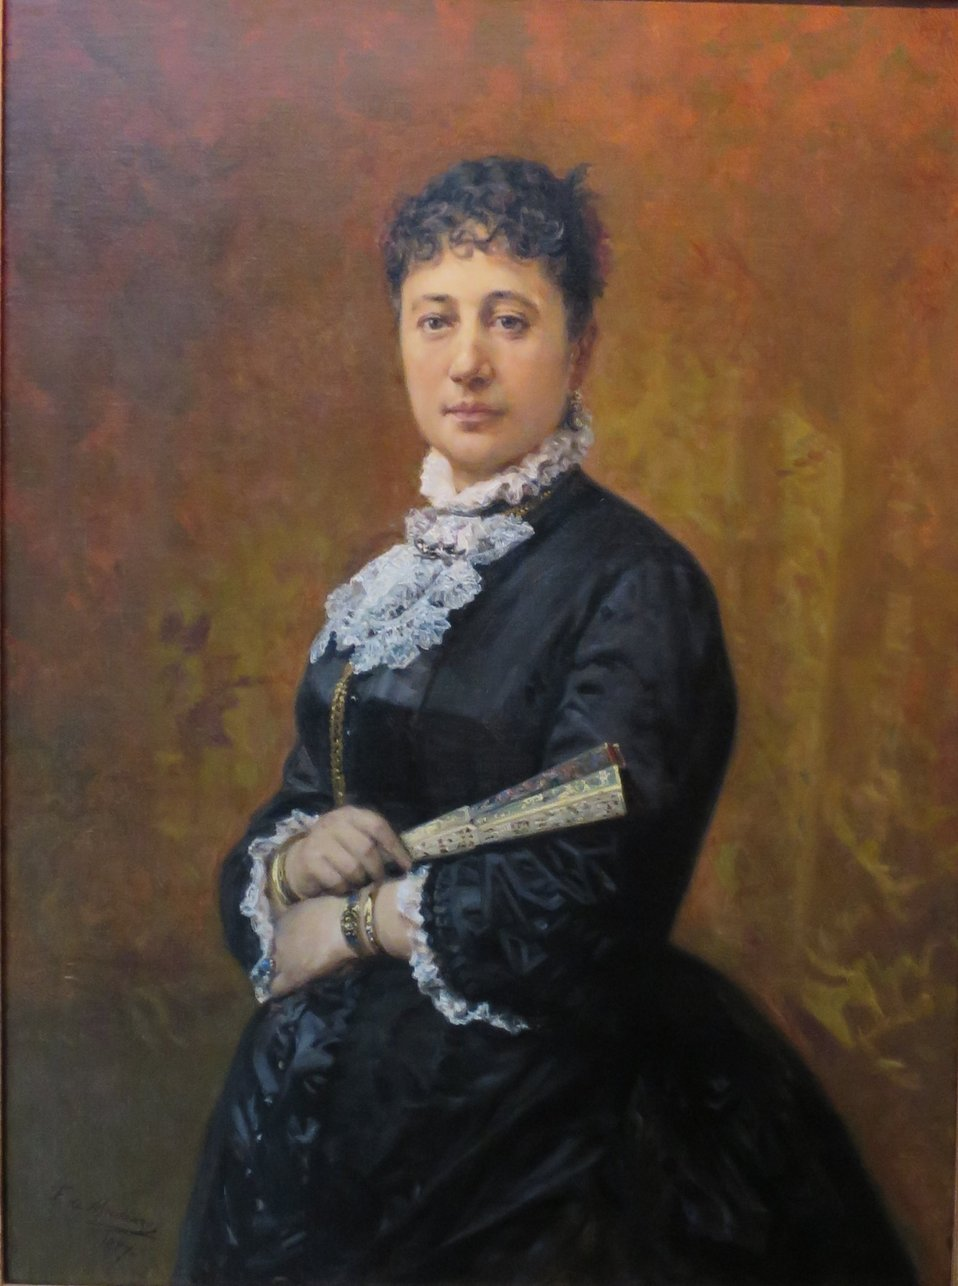 Portrait of Bernice Pauahi Bishop painted by Frederico de Madrazo from a photograph, 1887, Bernice P. Bishop Museum